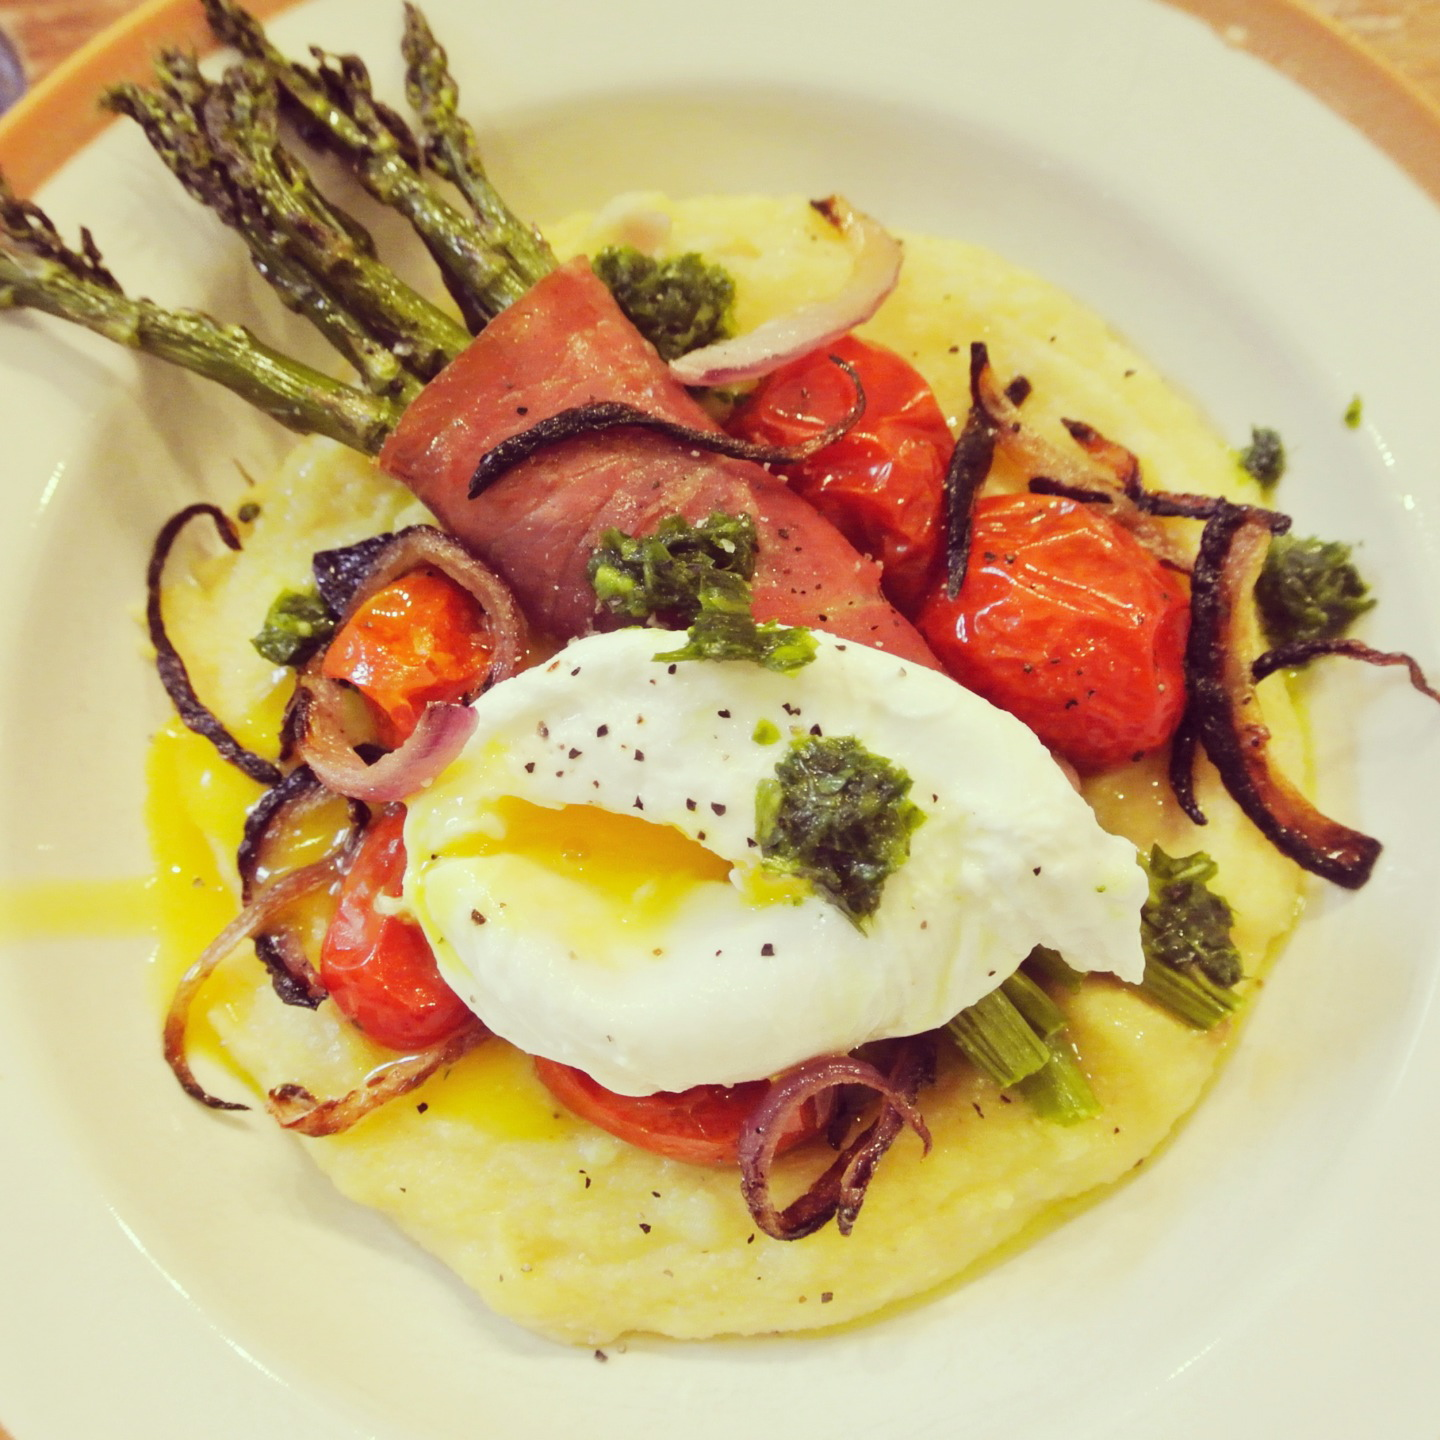 ... Prosciutto-Wrapped Roasted Asparagus & Cherry Tomatoes & Poached Egg